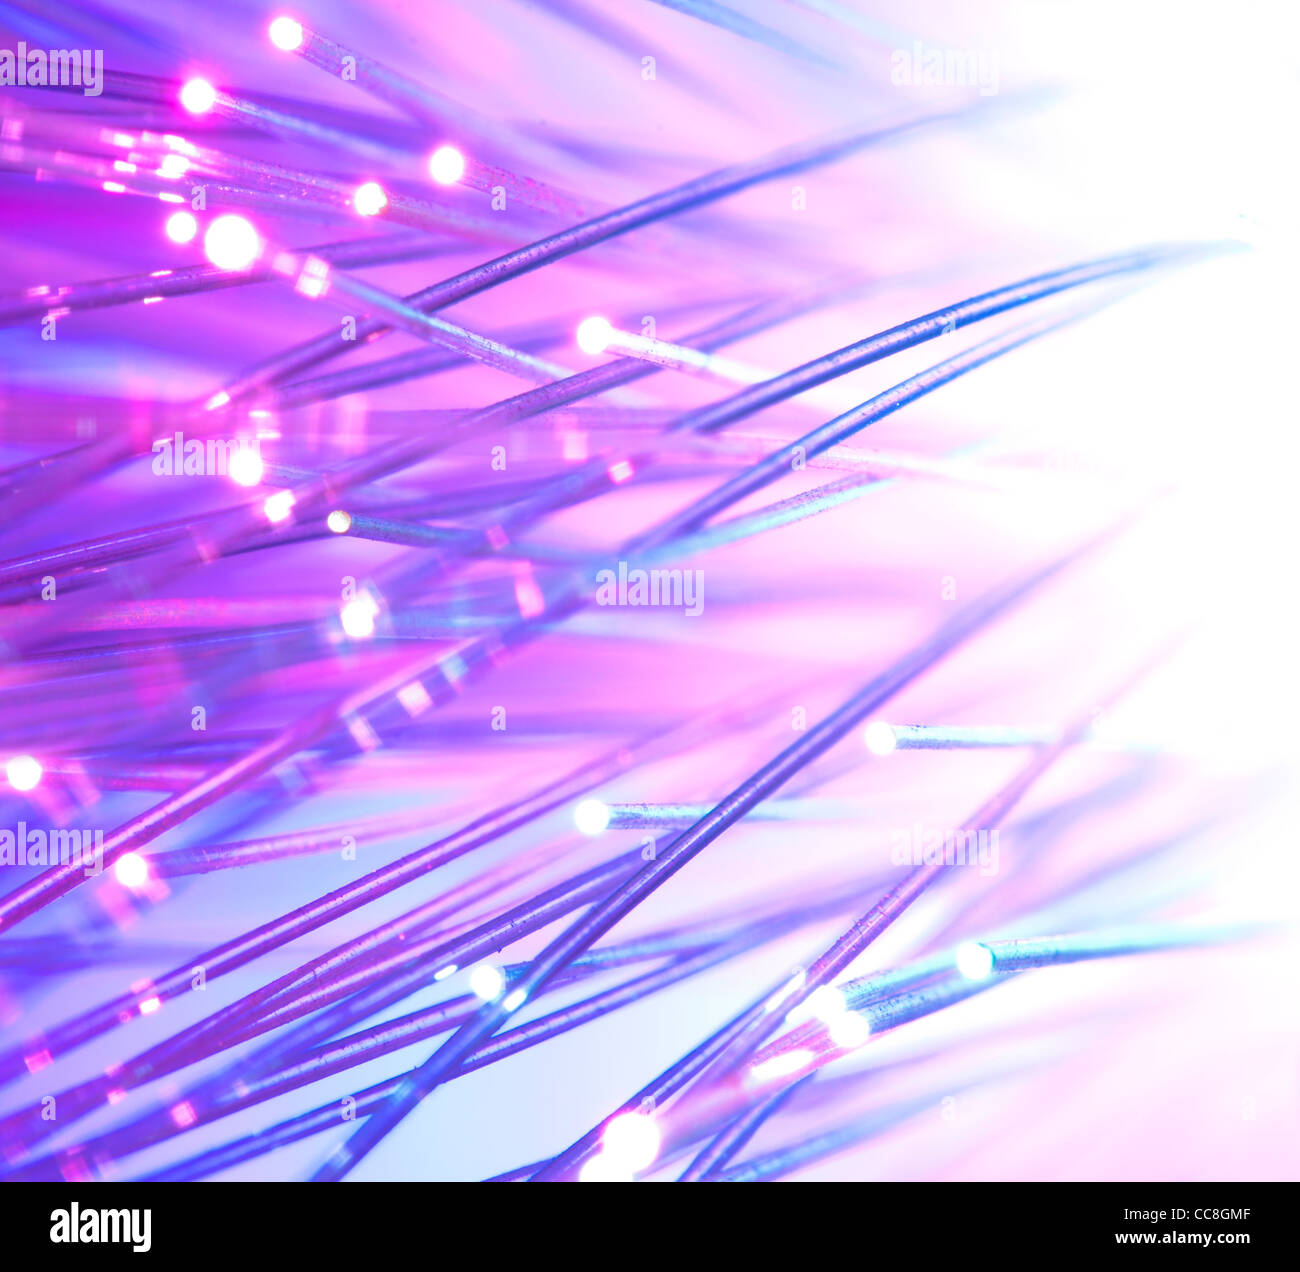 Optical fibers bright colors - Stock Image